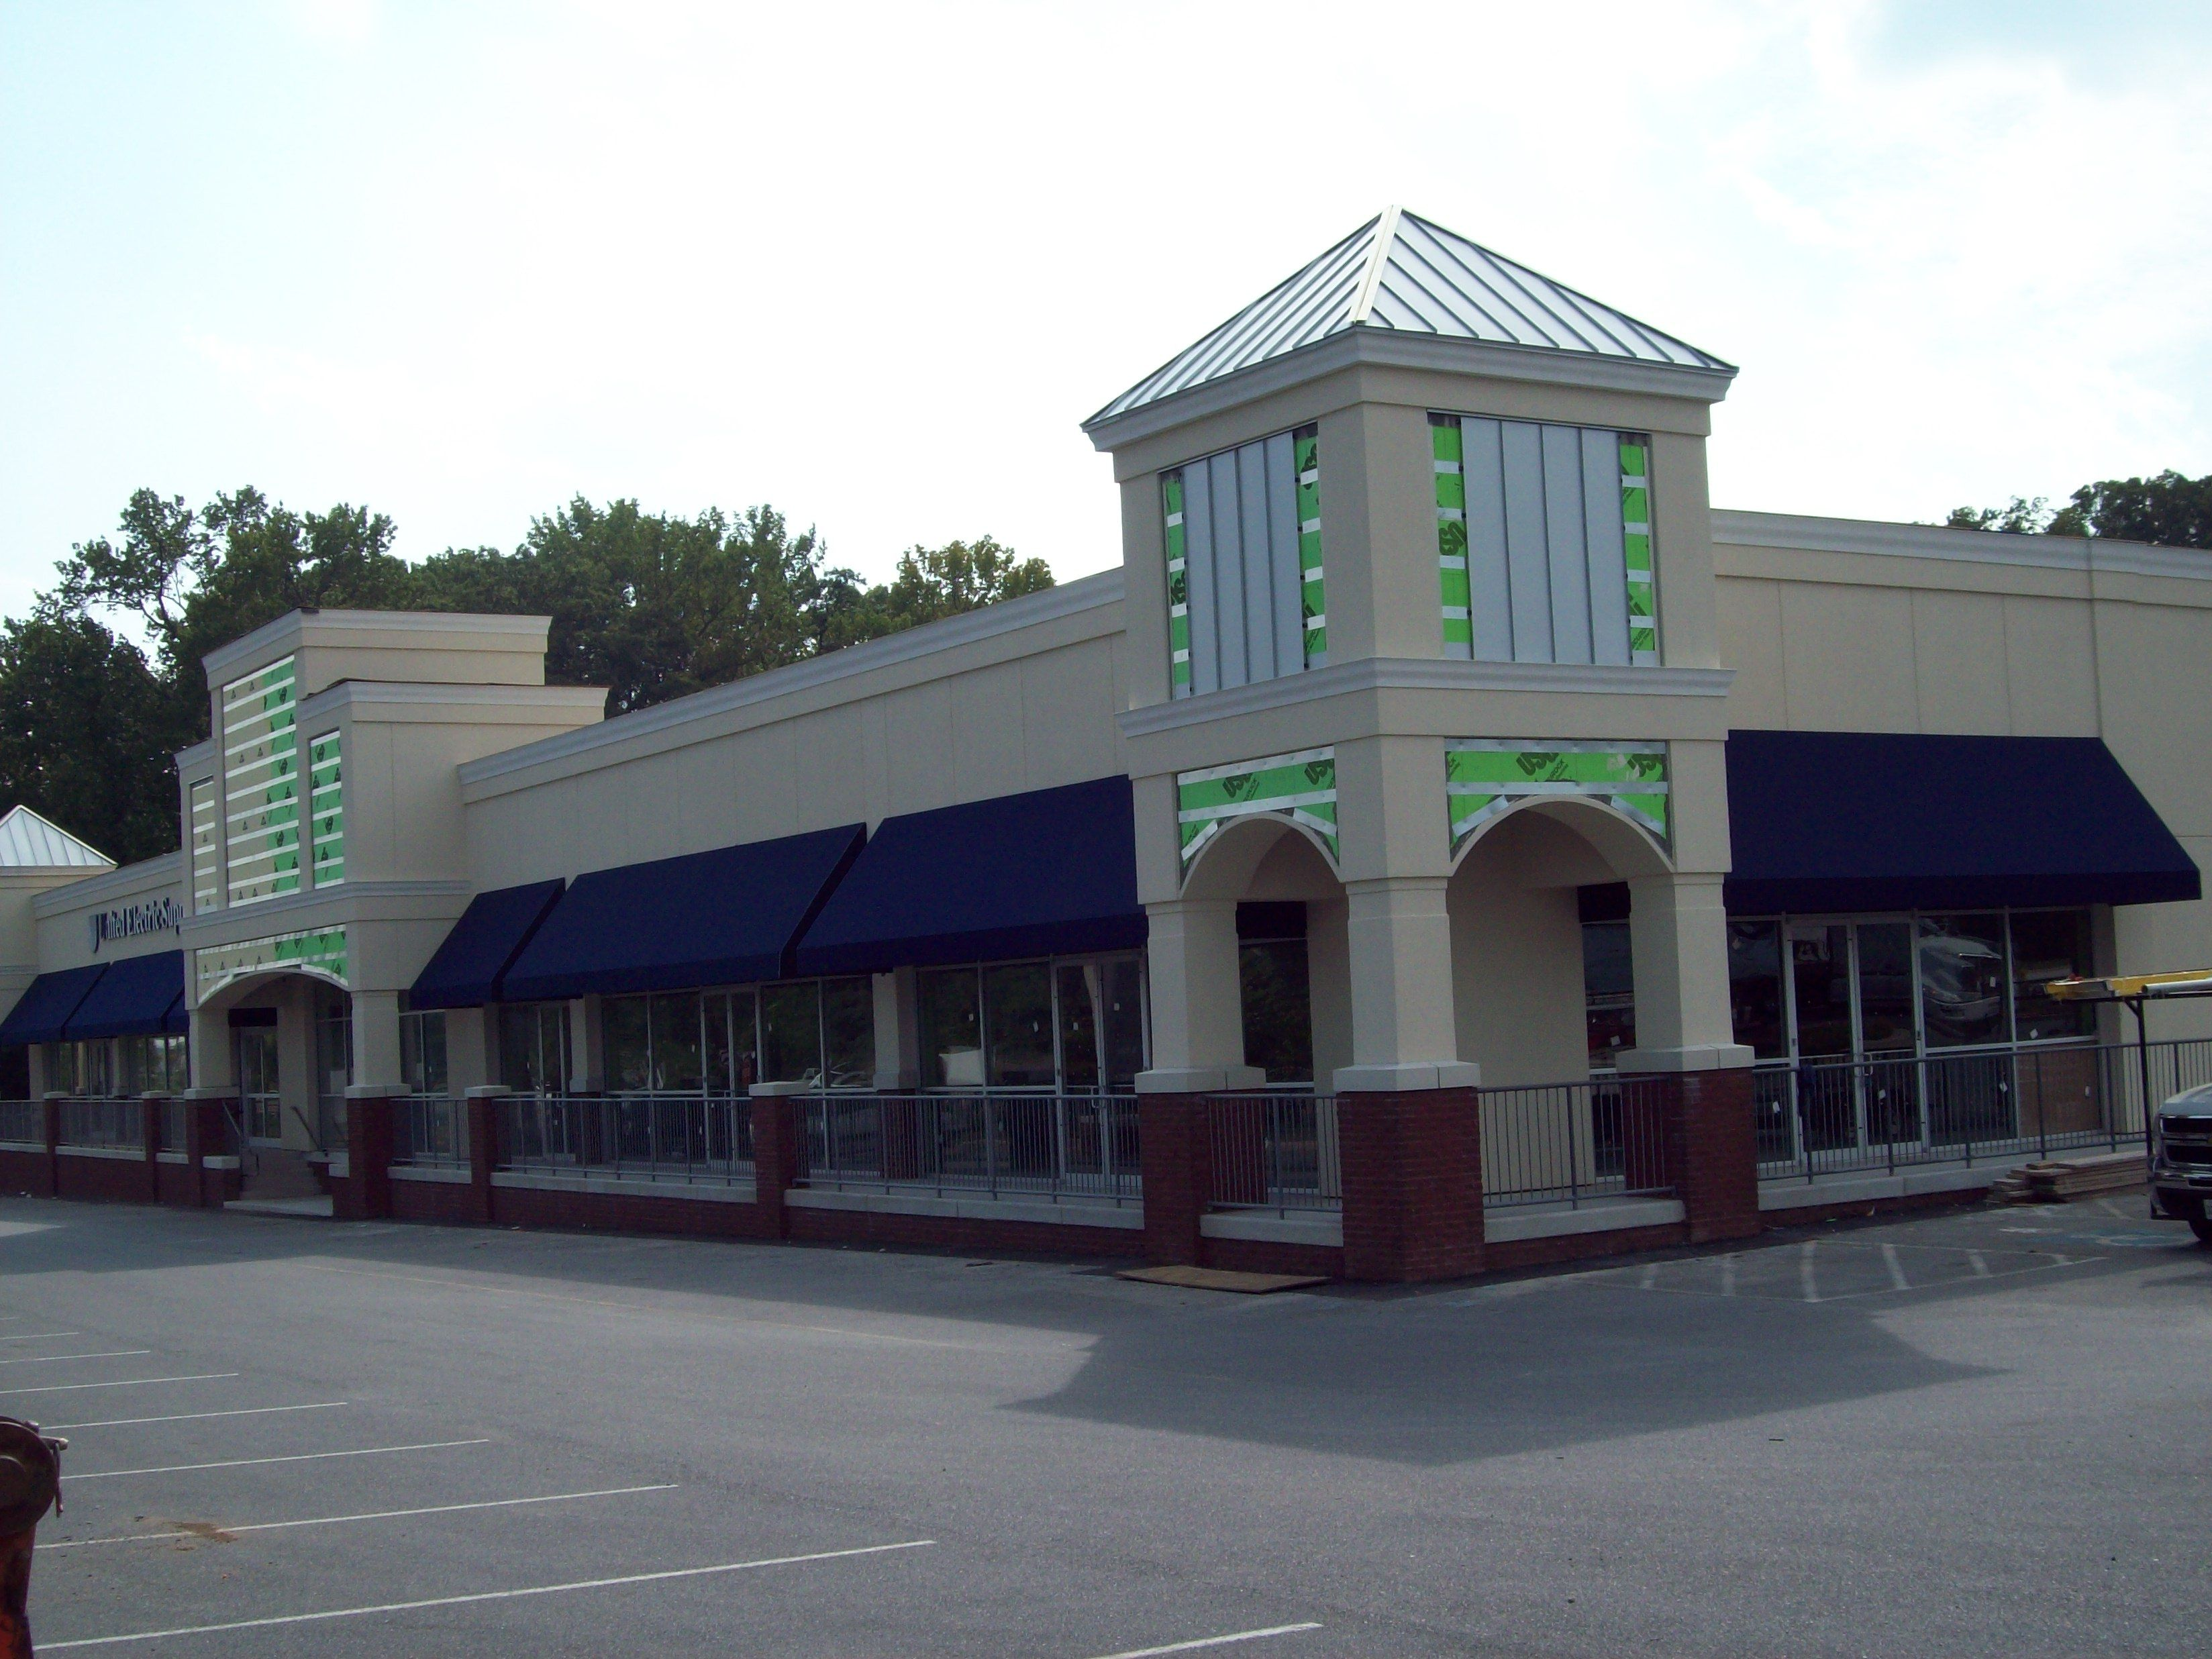 Retail Store Canopies Awnings Retail Store Canopy Fabric Awning